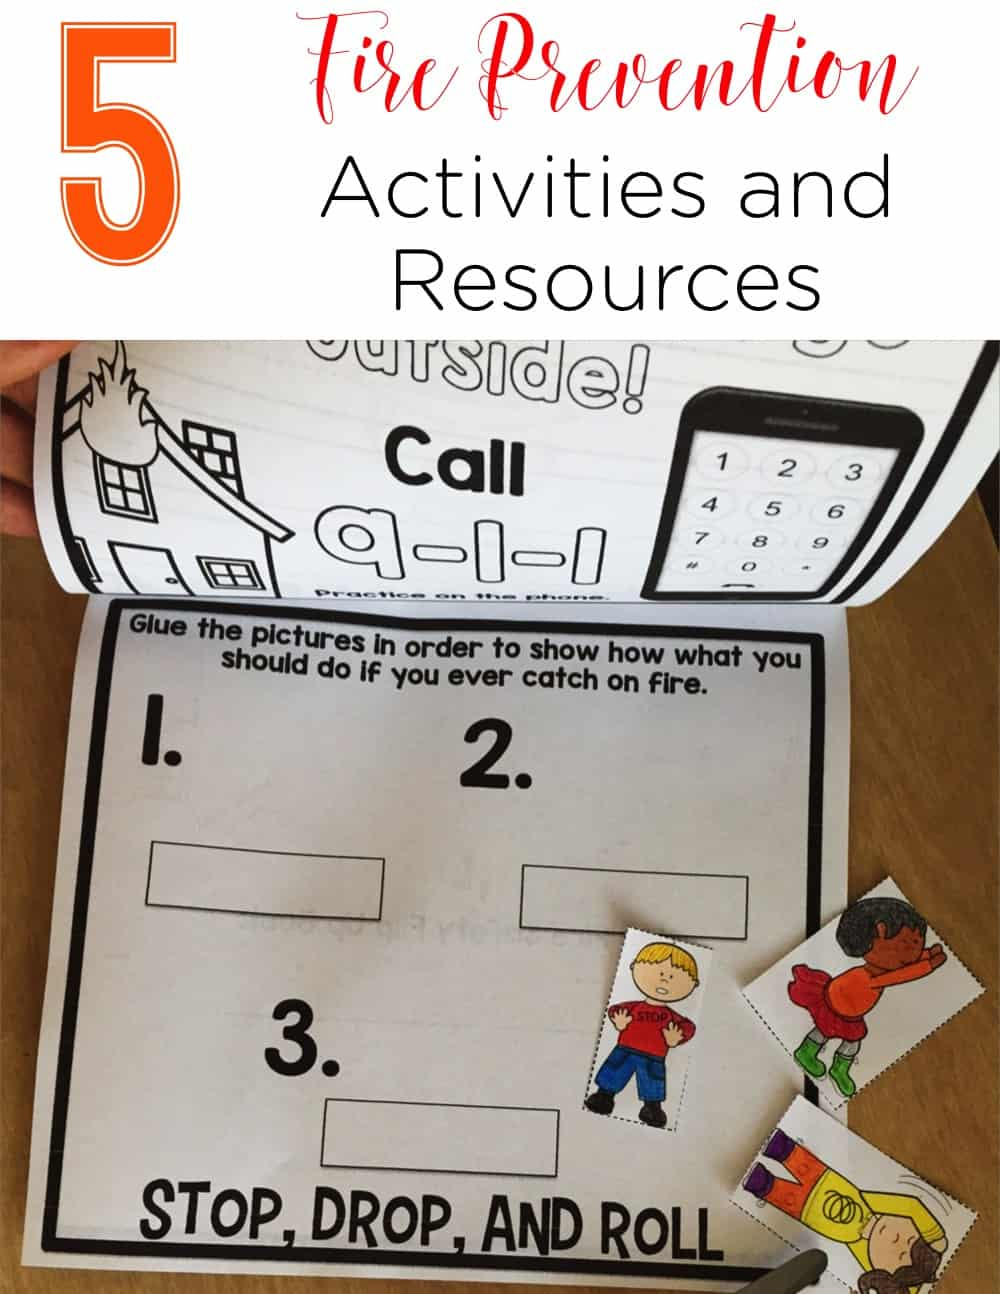 Fire Prevention Week Resources that are perfect for K-2 students. These activities range from books, to printables, to crafts, and to visuals to share! The third idea looks awesome! #firepreventionweek #kindergarten #firstgrade #secondgrade #activities #lessonideas #printables